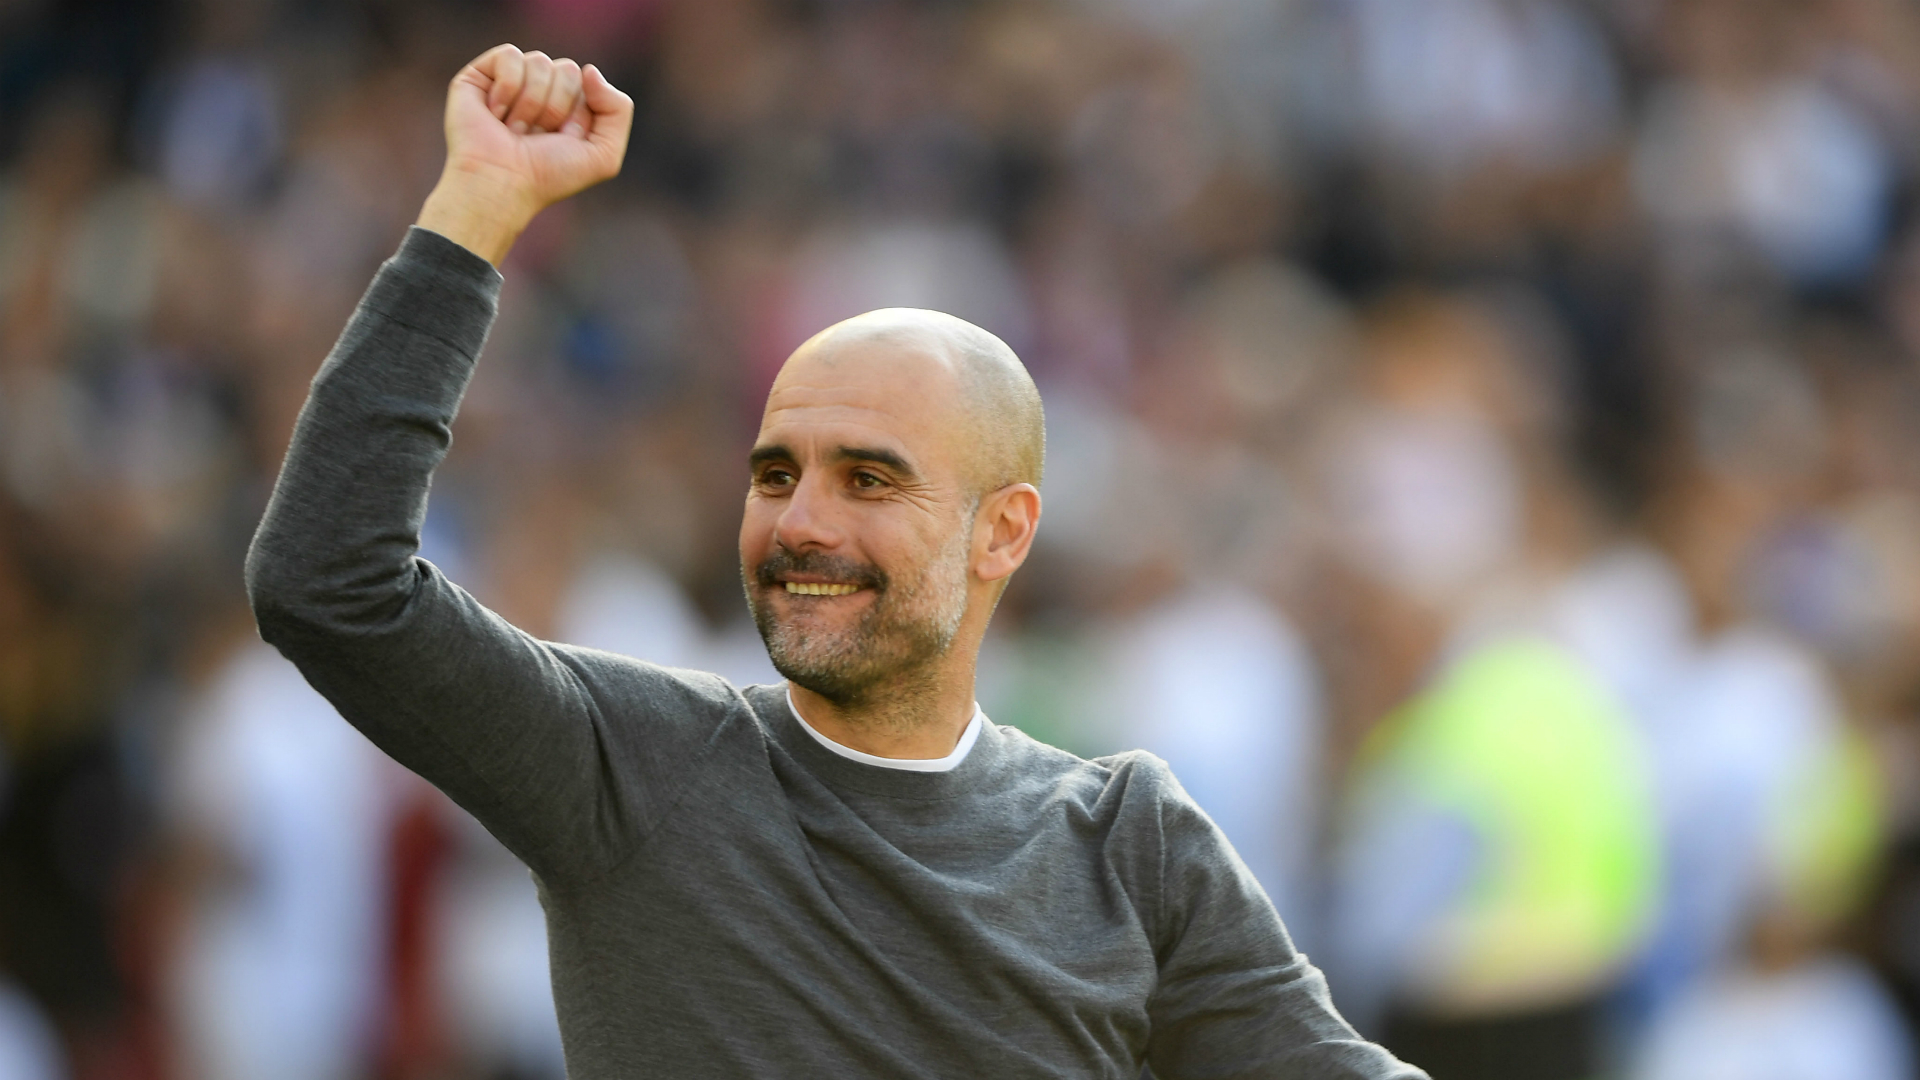 Valverde wants to learn from 'world's best' manager Guardiola